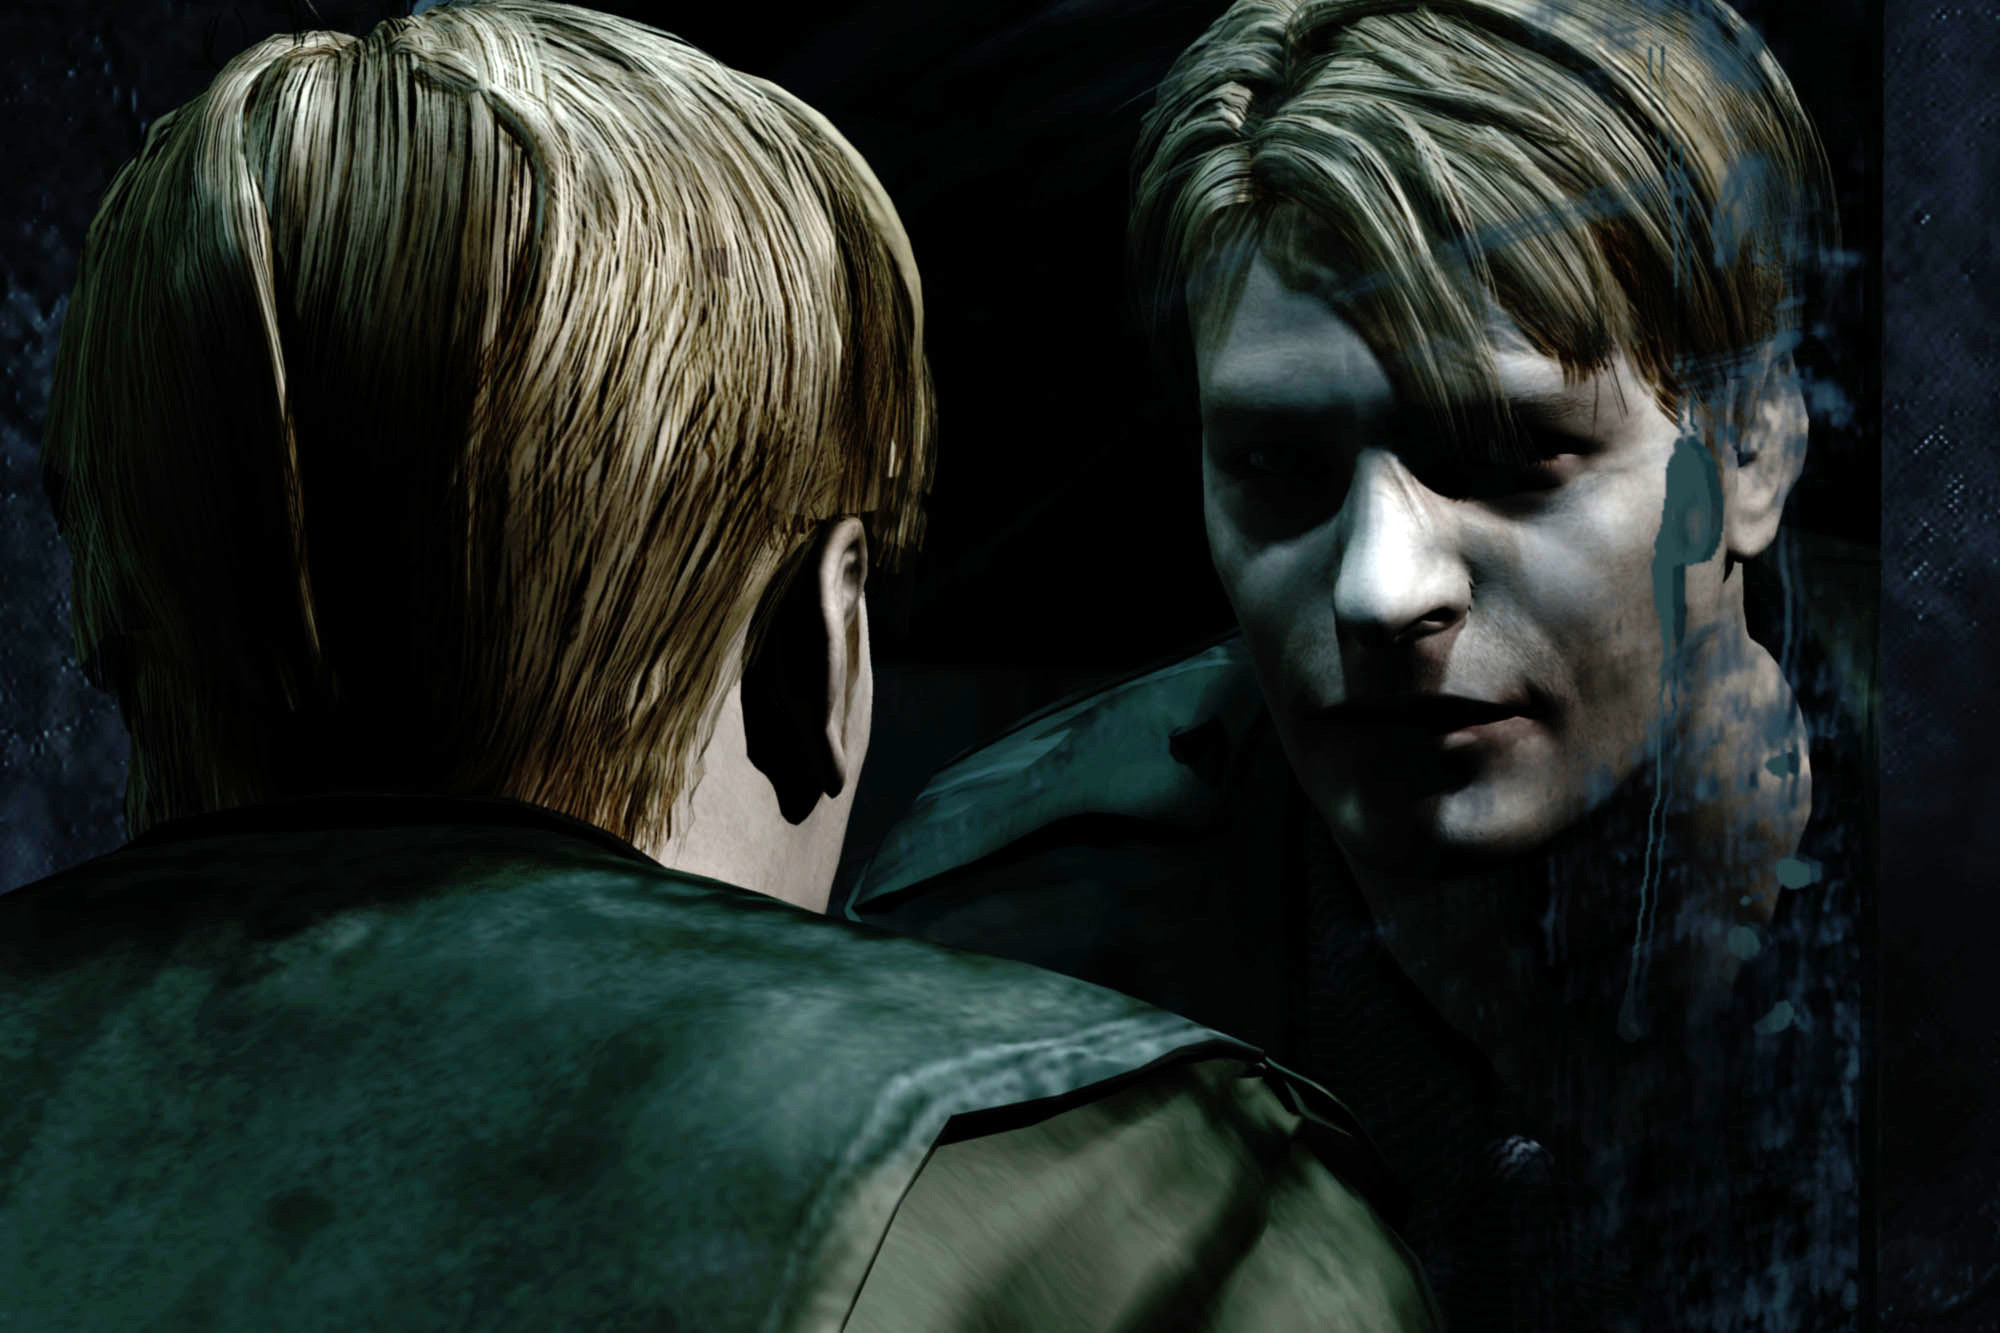 Konami hilariously tweets about Silent Hill, then apologizes for riling people up screenshot